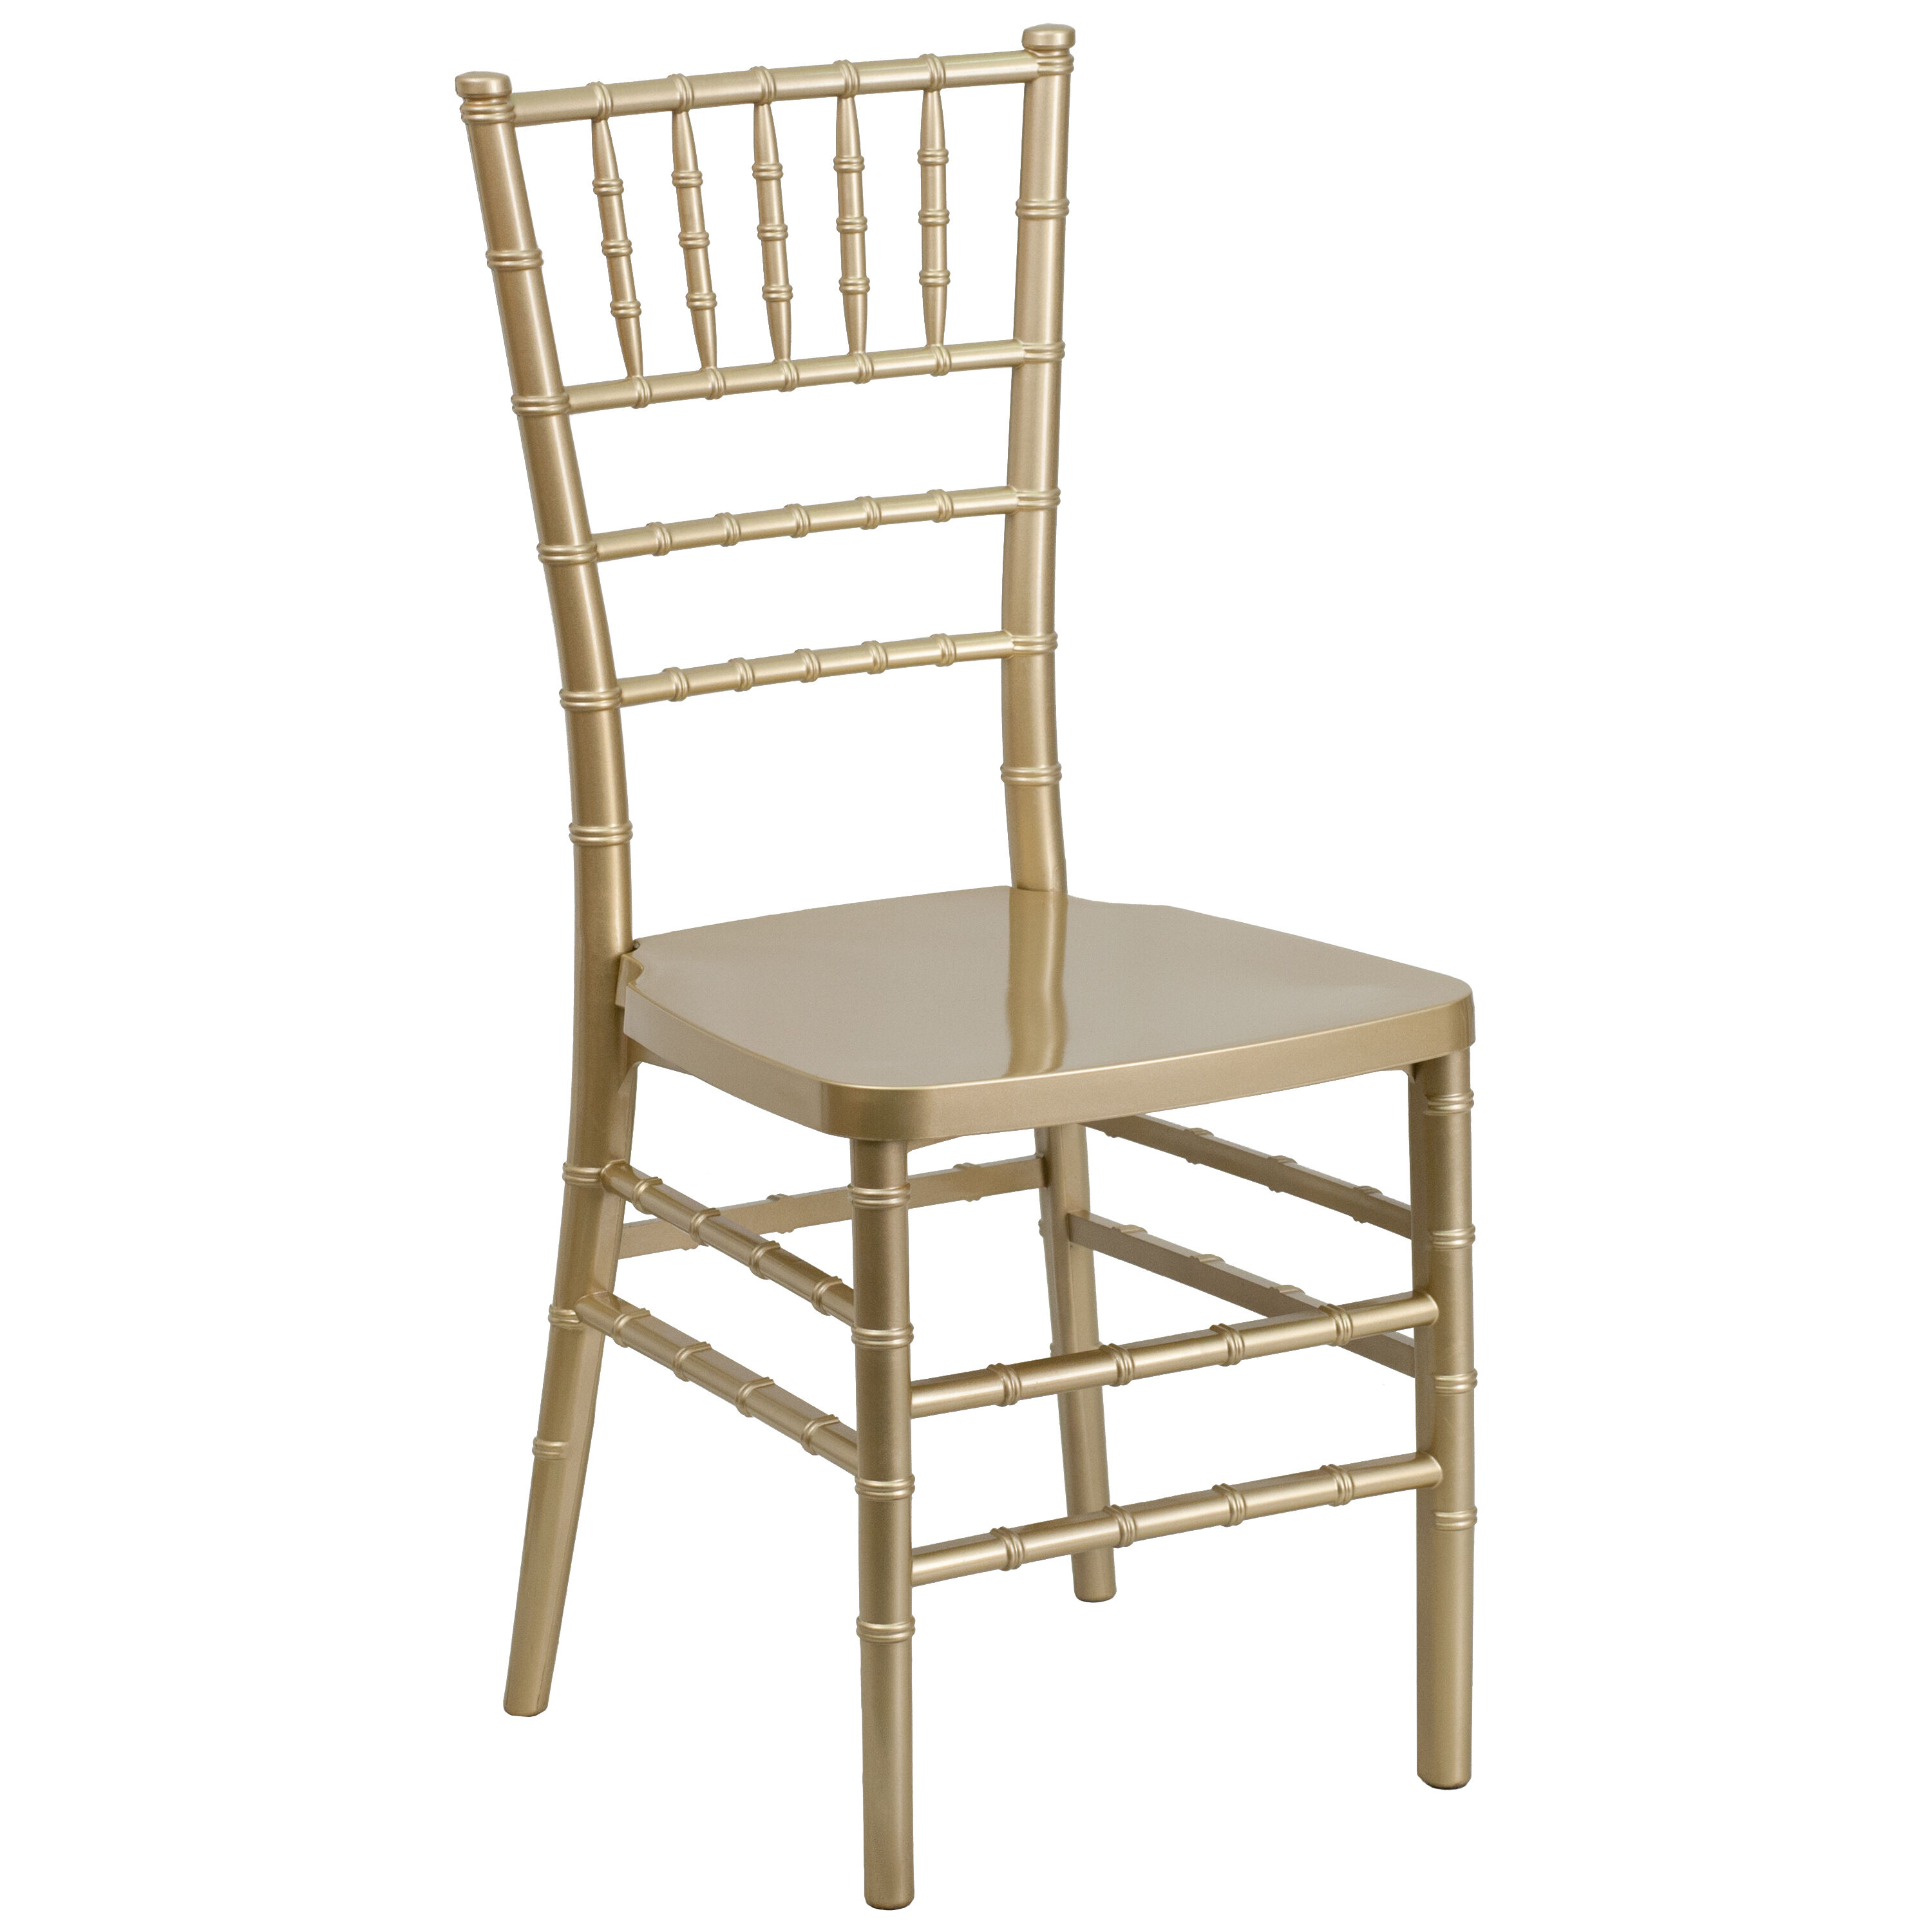 Resin Chairs Hercules Premium Series Gold Resin Stacking Chiavari Chair With Free Cushion